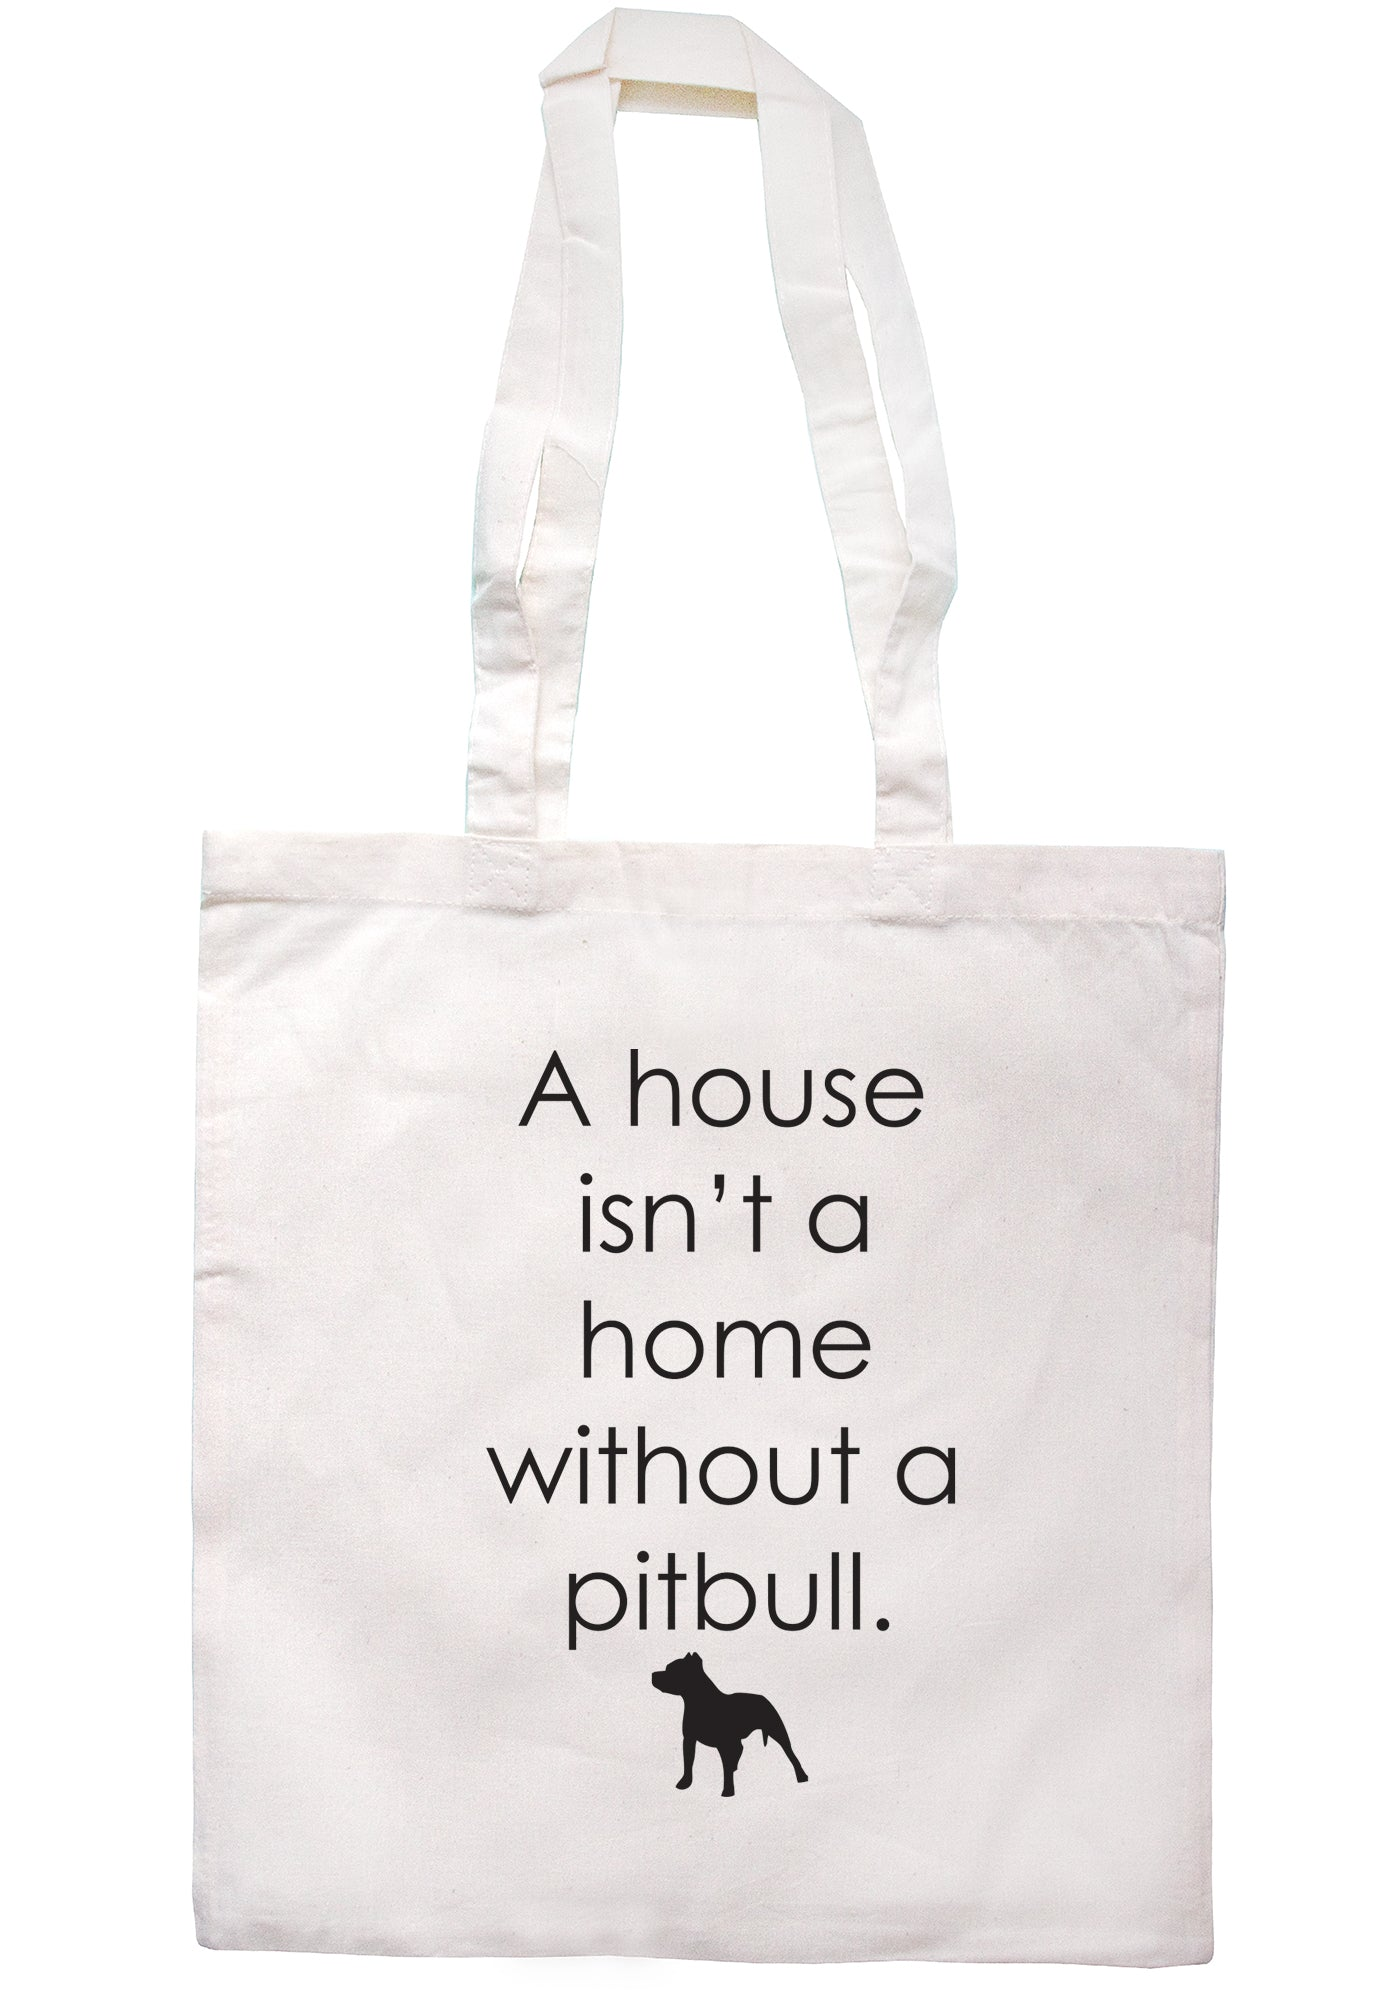 A House Isn't A Home Without A Pitbull Tote Bag S0600 - Illustrated Identity Ltd.